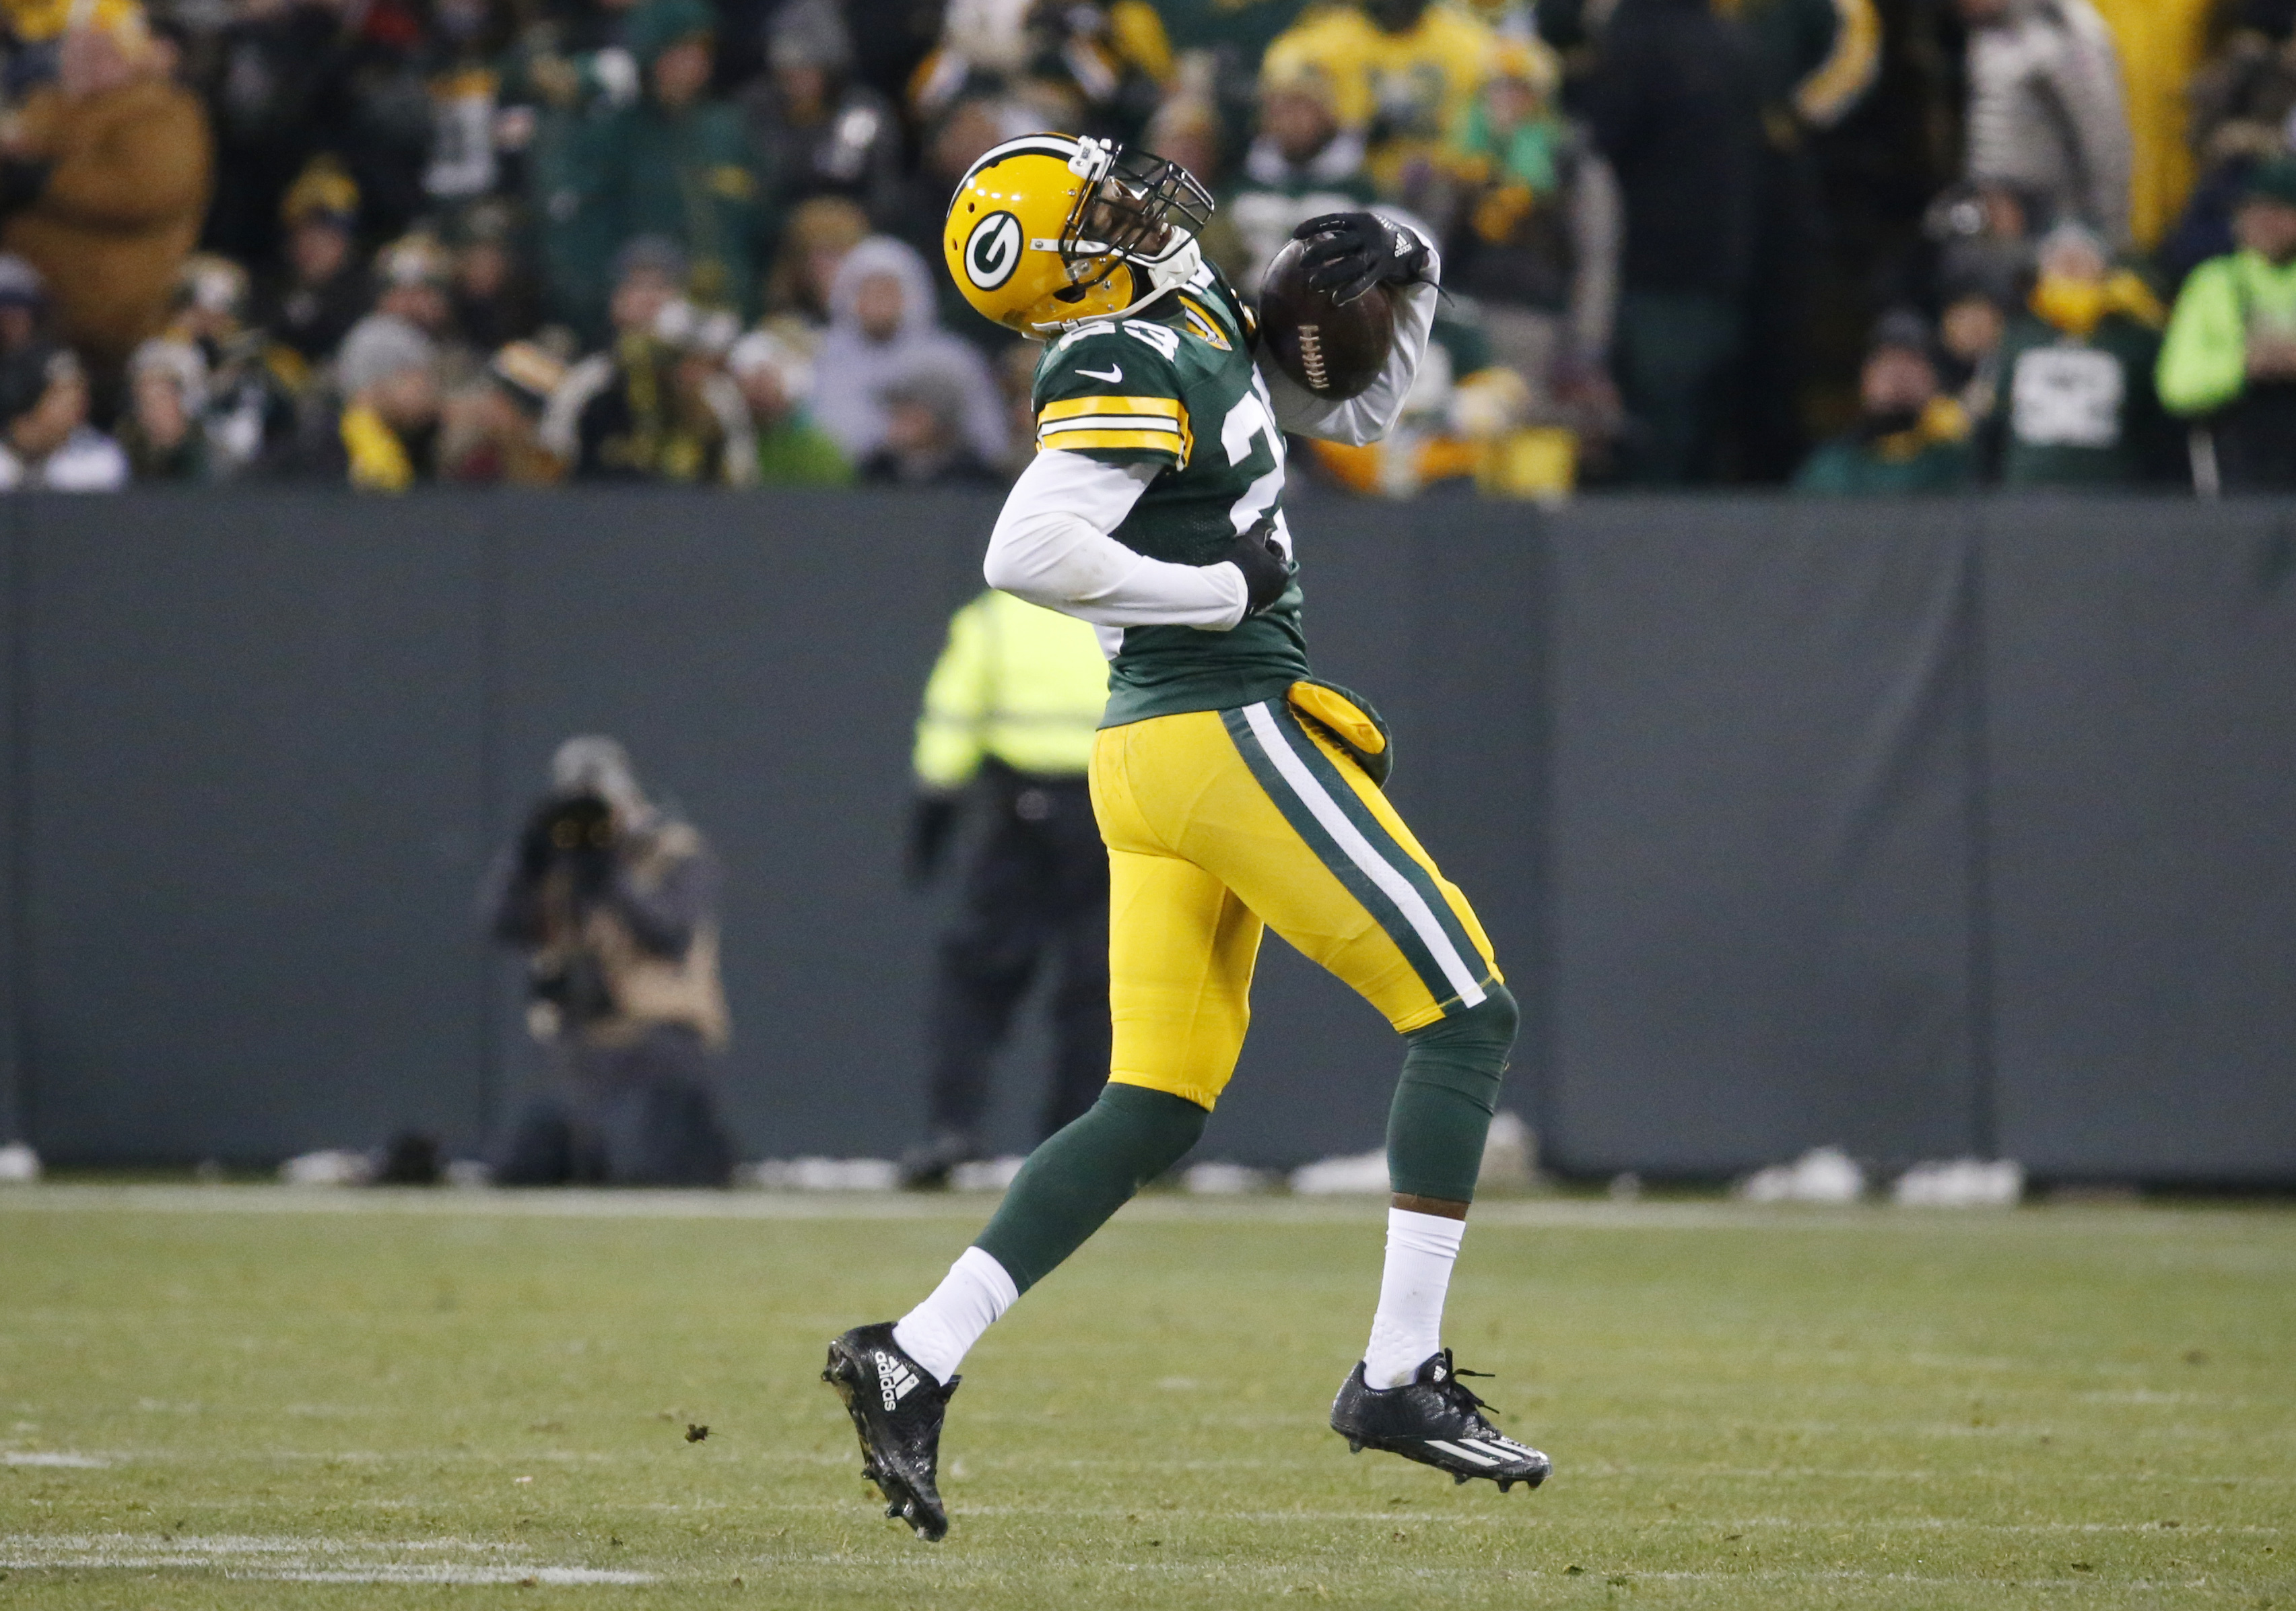 Packers secondary has setback with Randall's foot injury